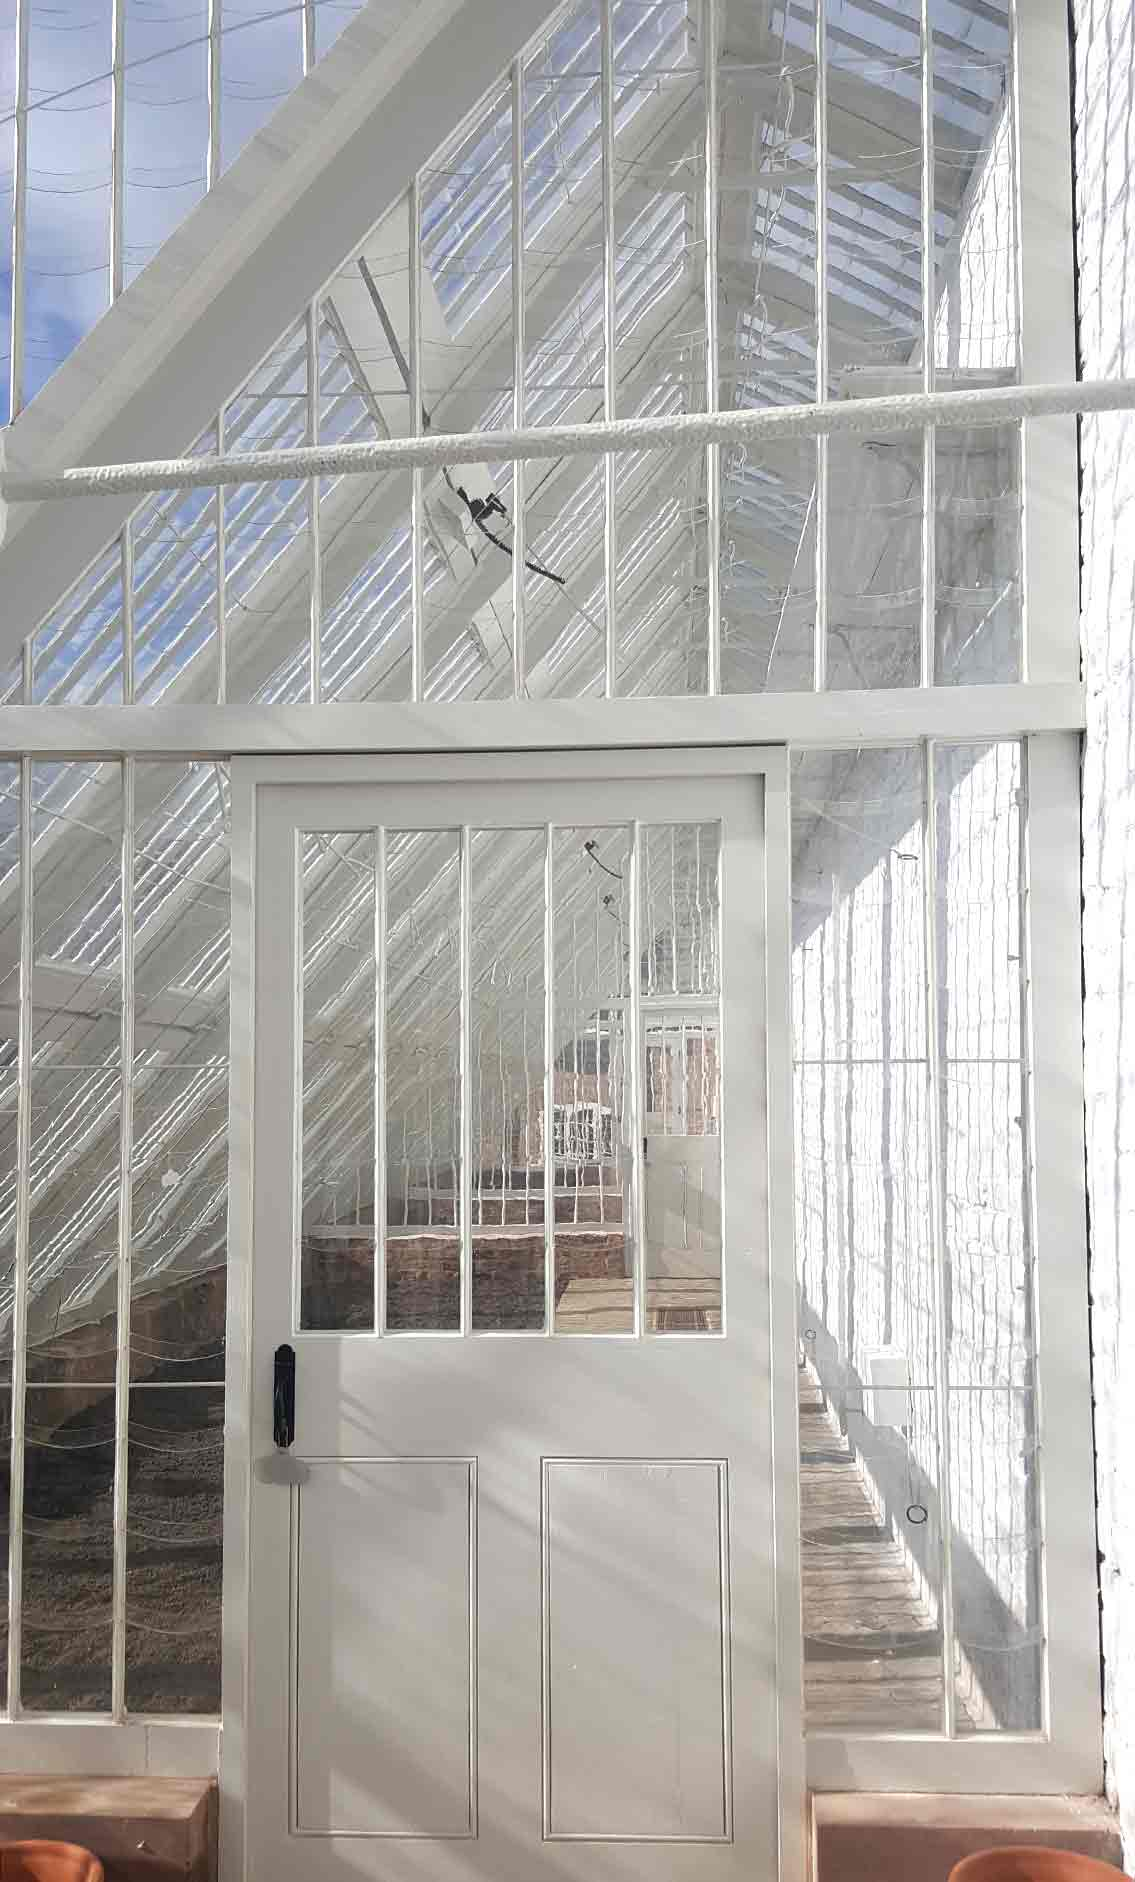 Work completes on Quarry Bank glasshouse restoration | Buttress Architects